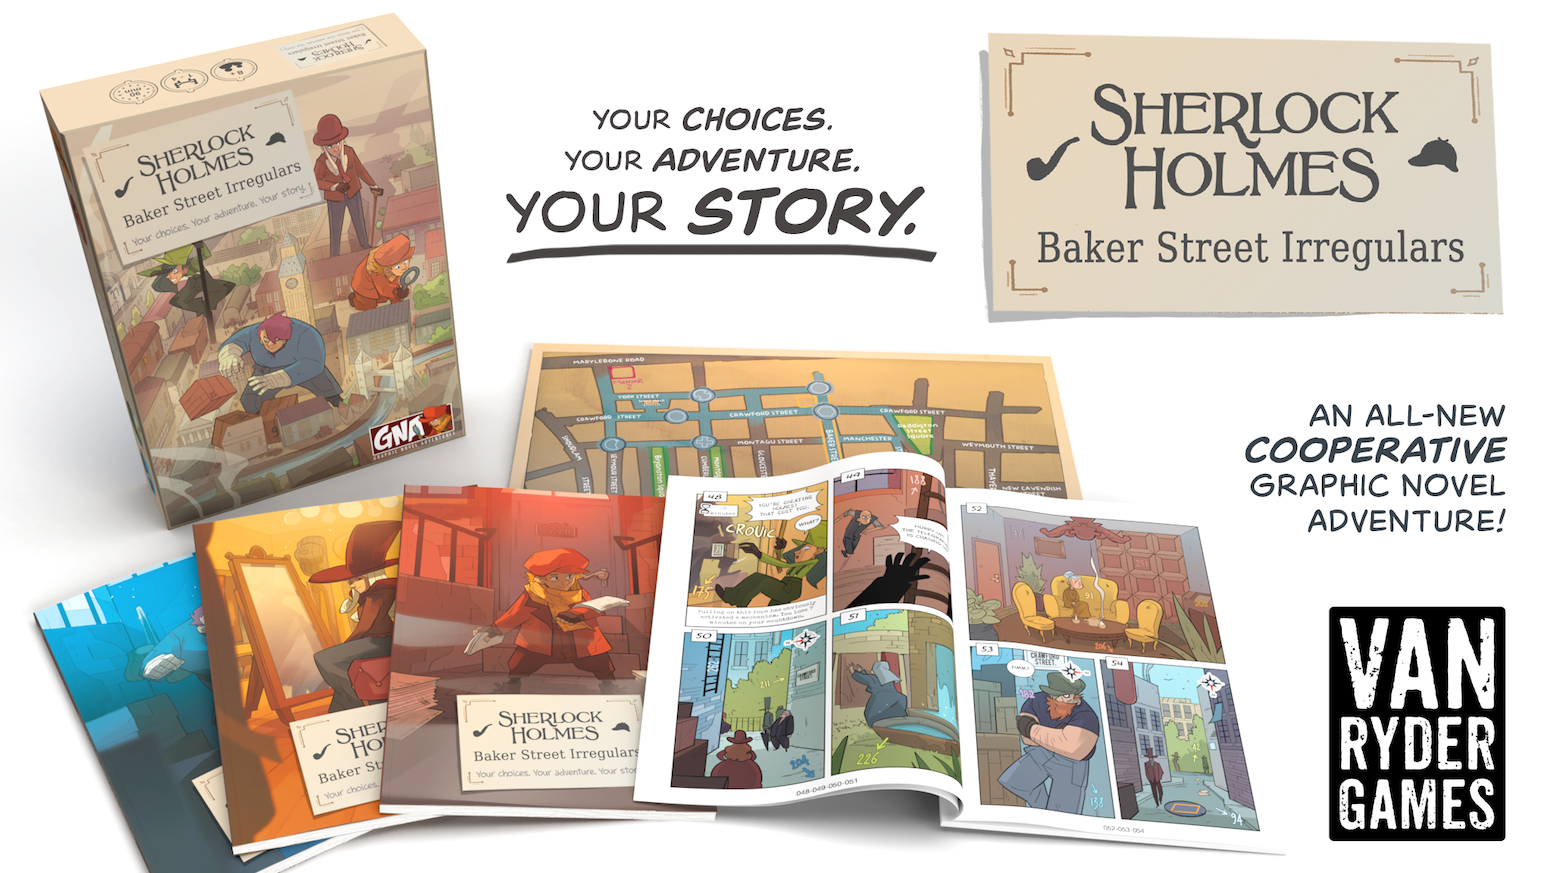 A cooperative Graphic Novel Adventure for 1-4 players. Plus, see how it all began in the new GNA book, Sherlock Holmes: The Beginning.